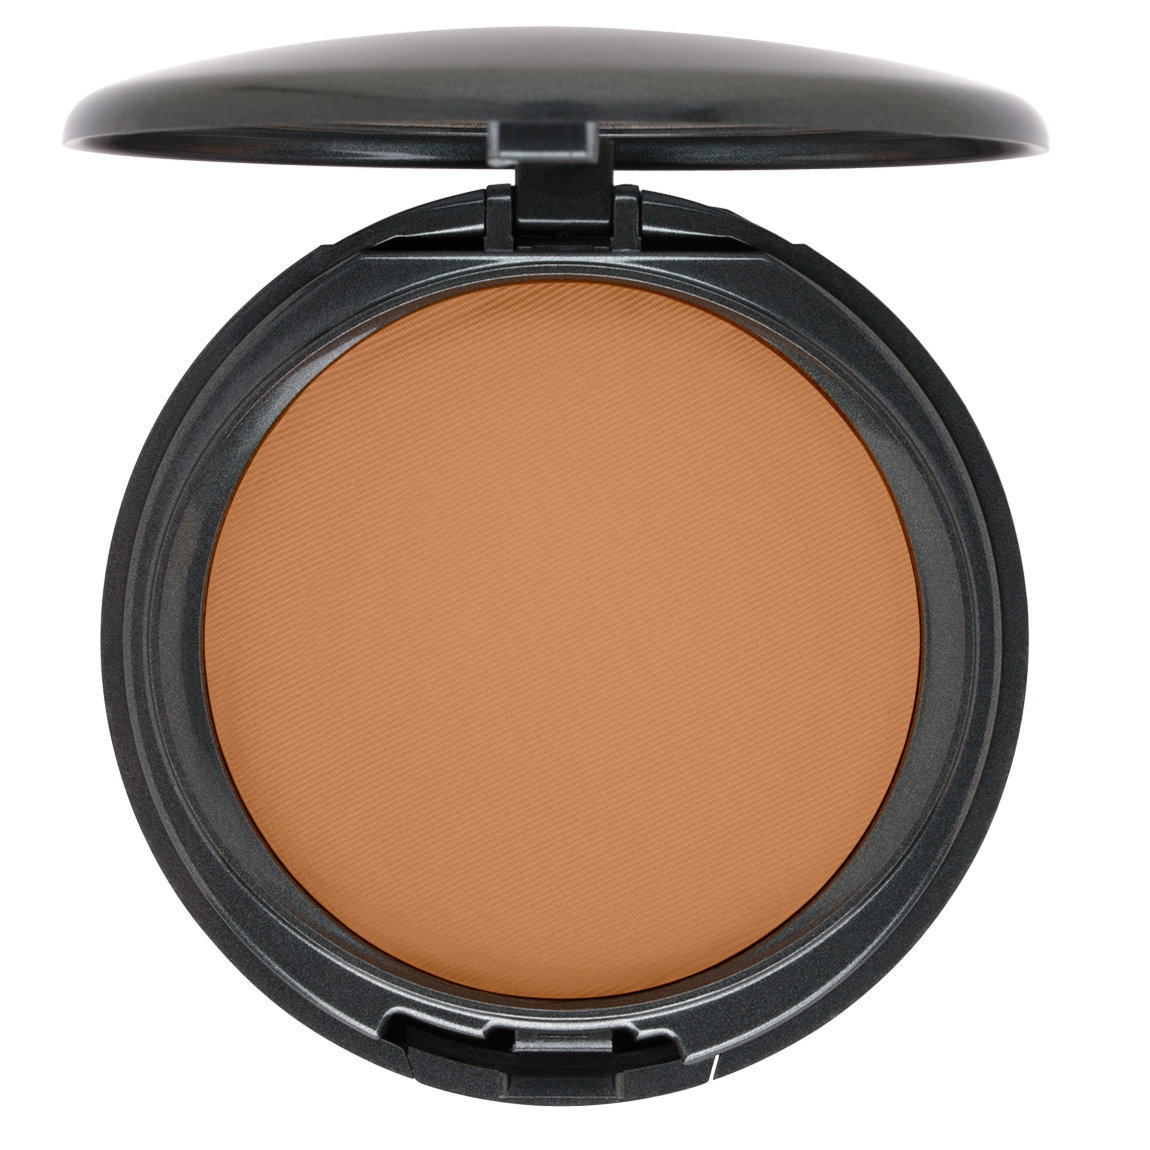 COVER | FX Pressed Mineral Foundation N40 alternative view 1 - product swatch.